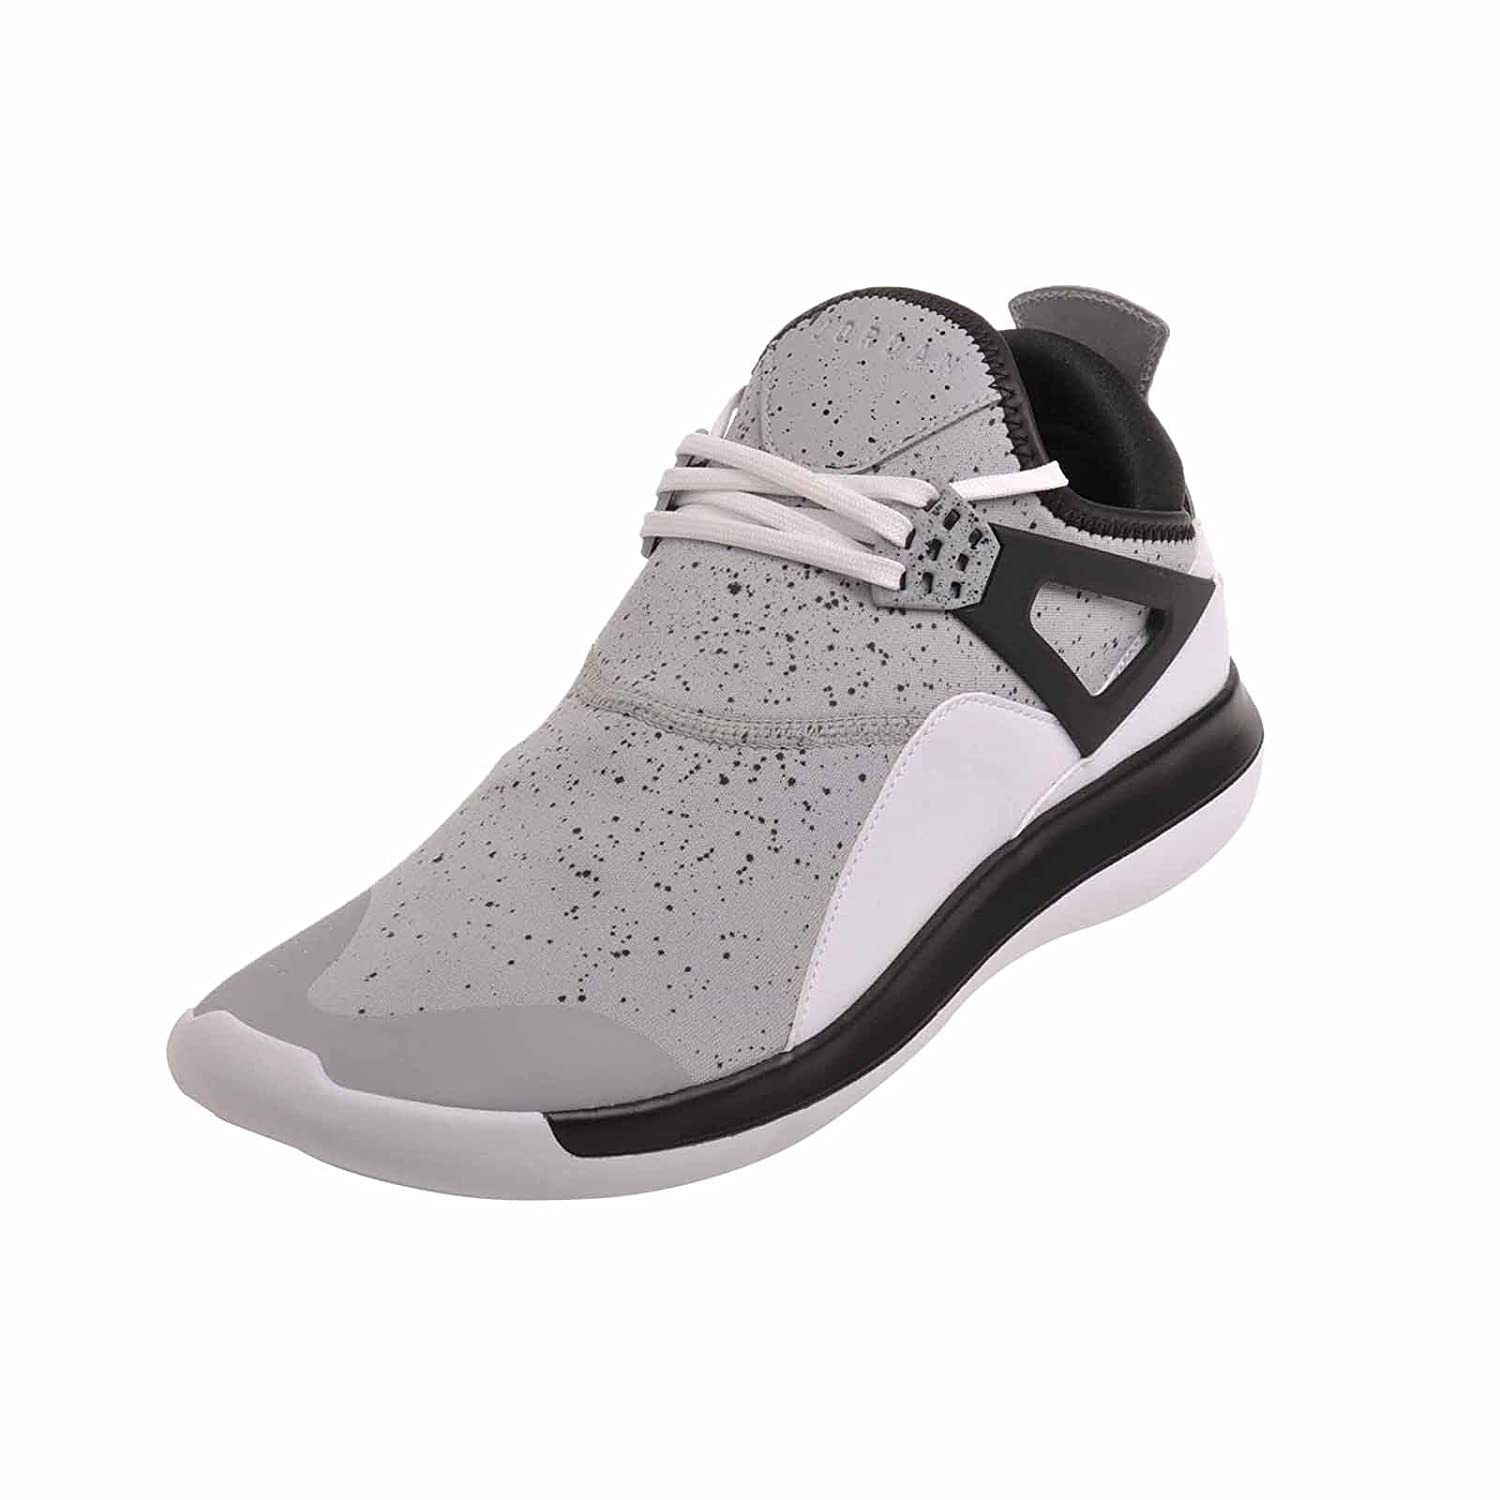 Nike Jordan Jordan Men's Fly '89 Fashion Sneakers (11, Wolf  Grey/Wolf-Black): Buy Online at Low Prices in India - Amazon.in